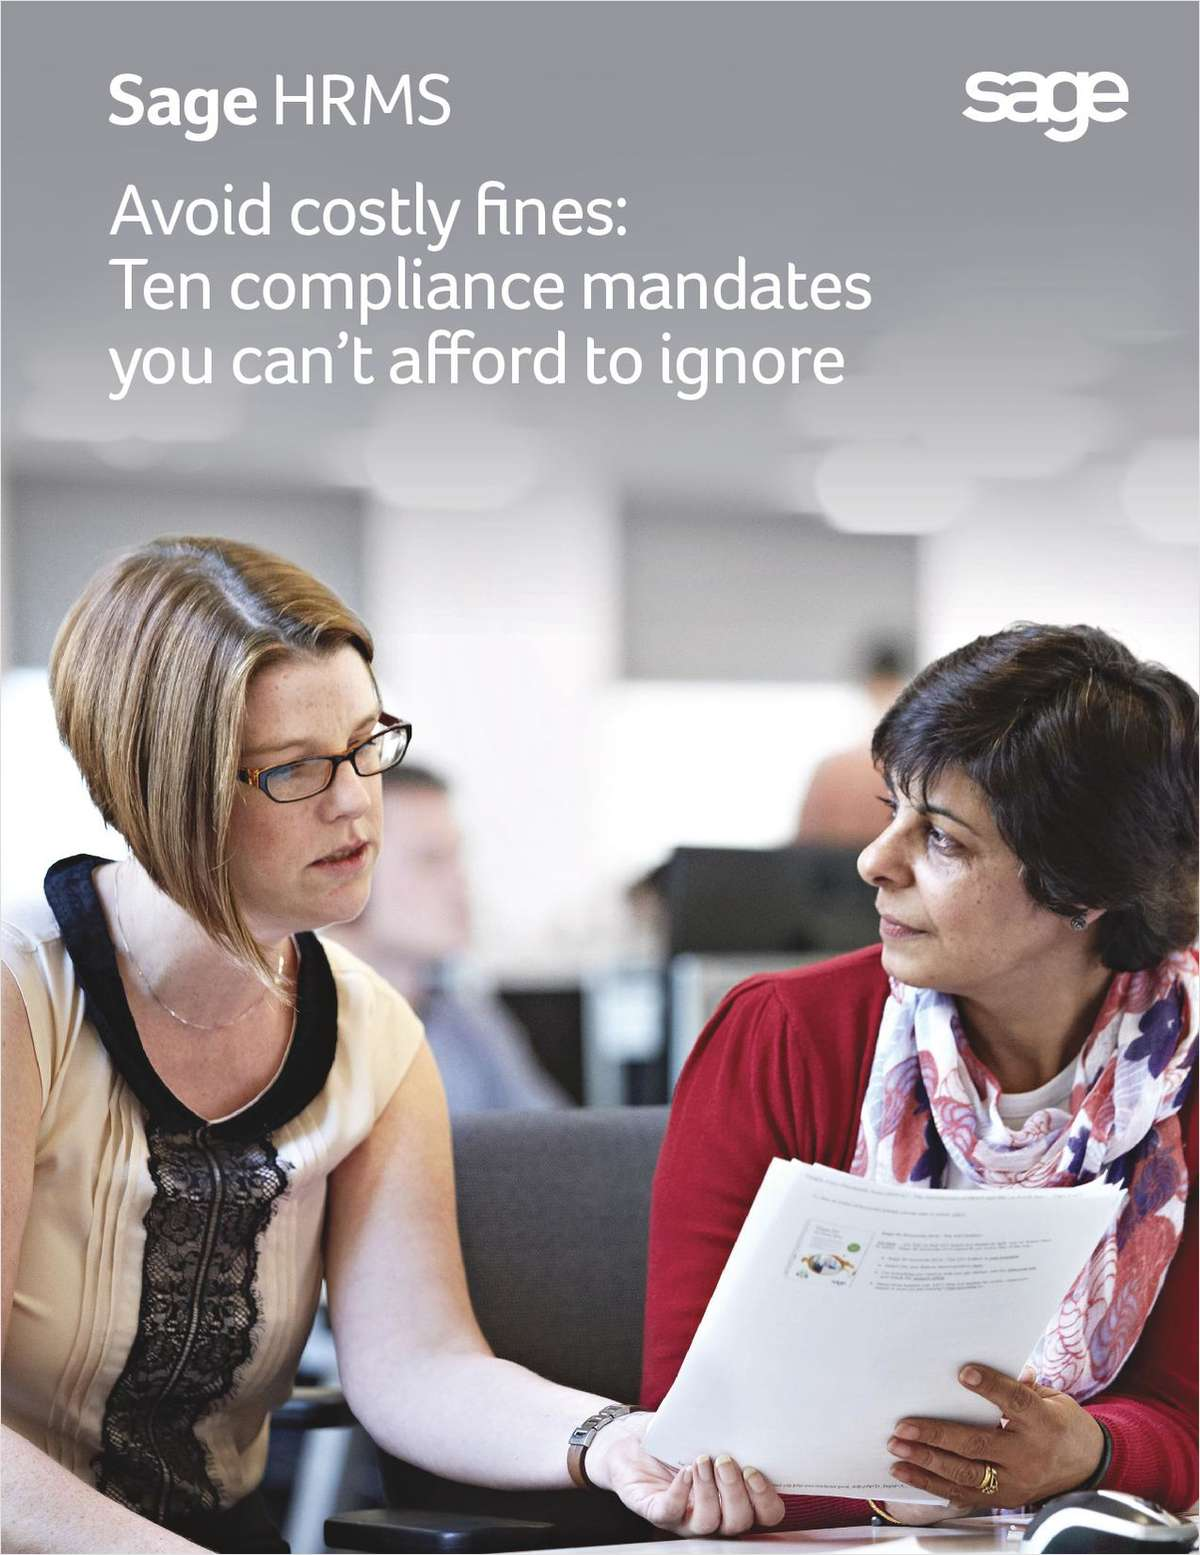 Avoid Costly Fines: Ten Compliance Mandates You Can't Afford to Ignore